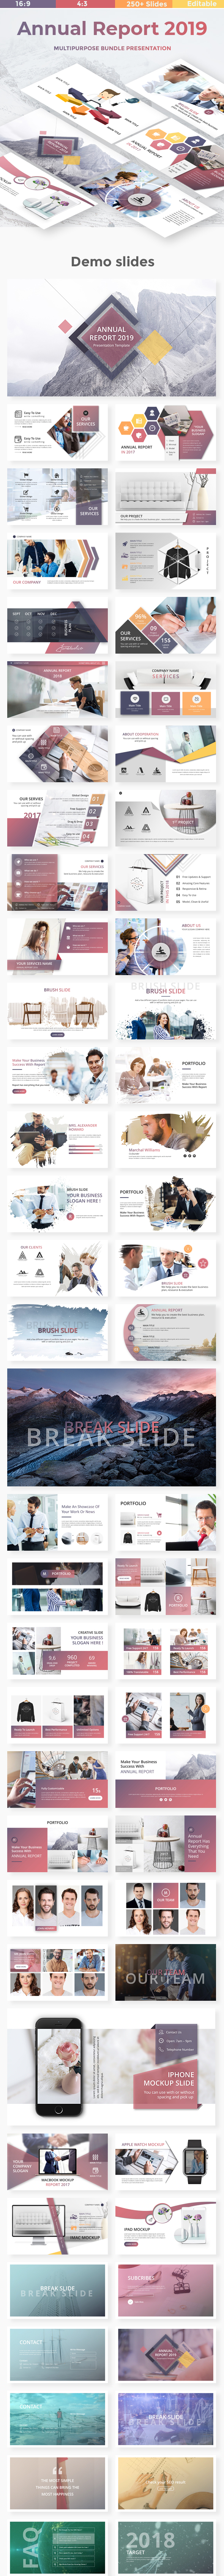 Annual Report 2019 - Business Keynote Template - Business Keynote Templates